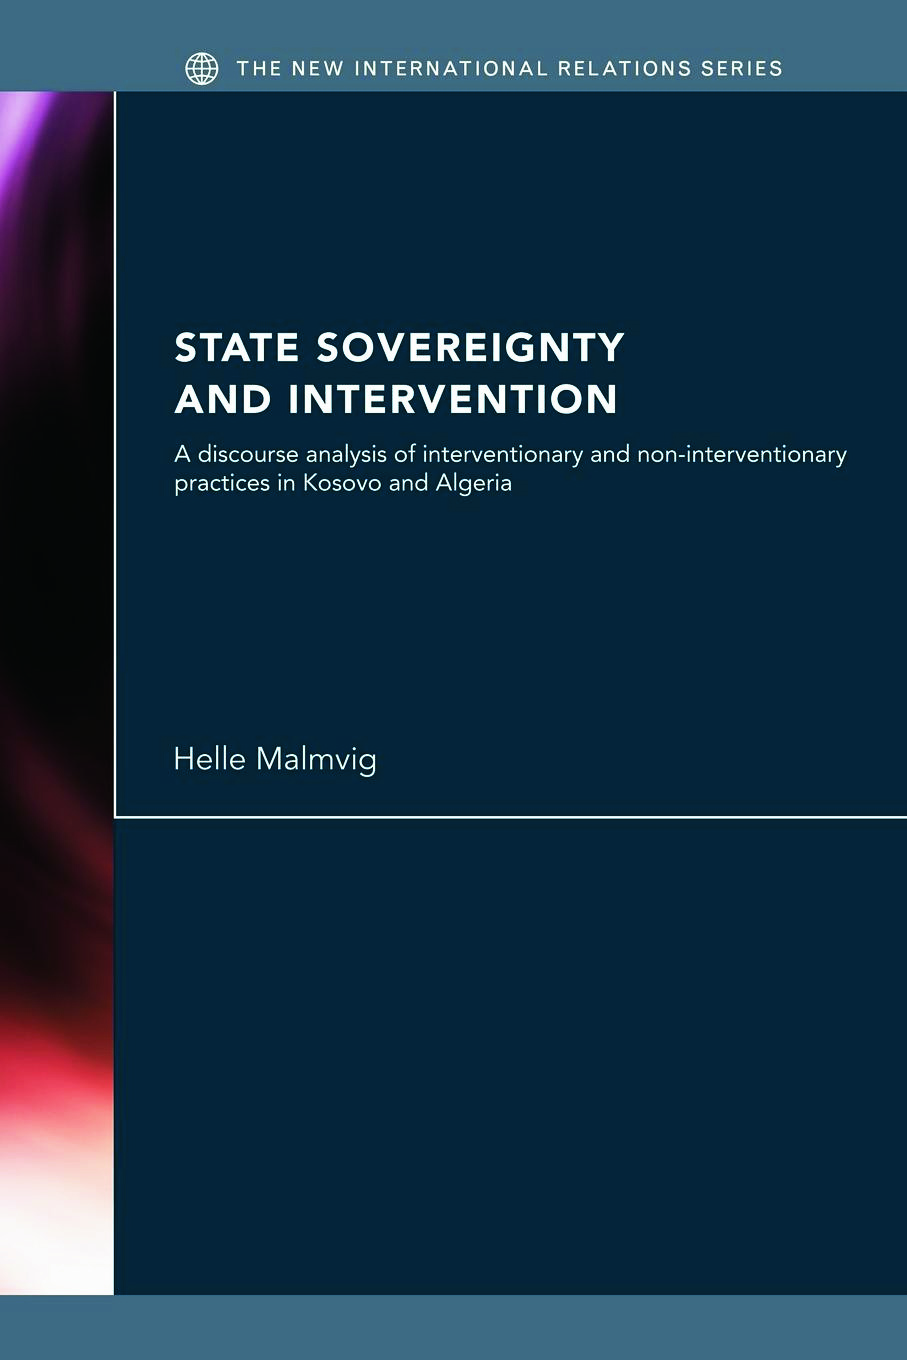 State Sovereignty and Intervention: A Discourse Analysis of Interventionary and Non-Interventionary Practices in Kosovo and Algeria book cover